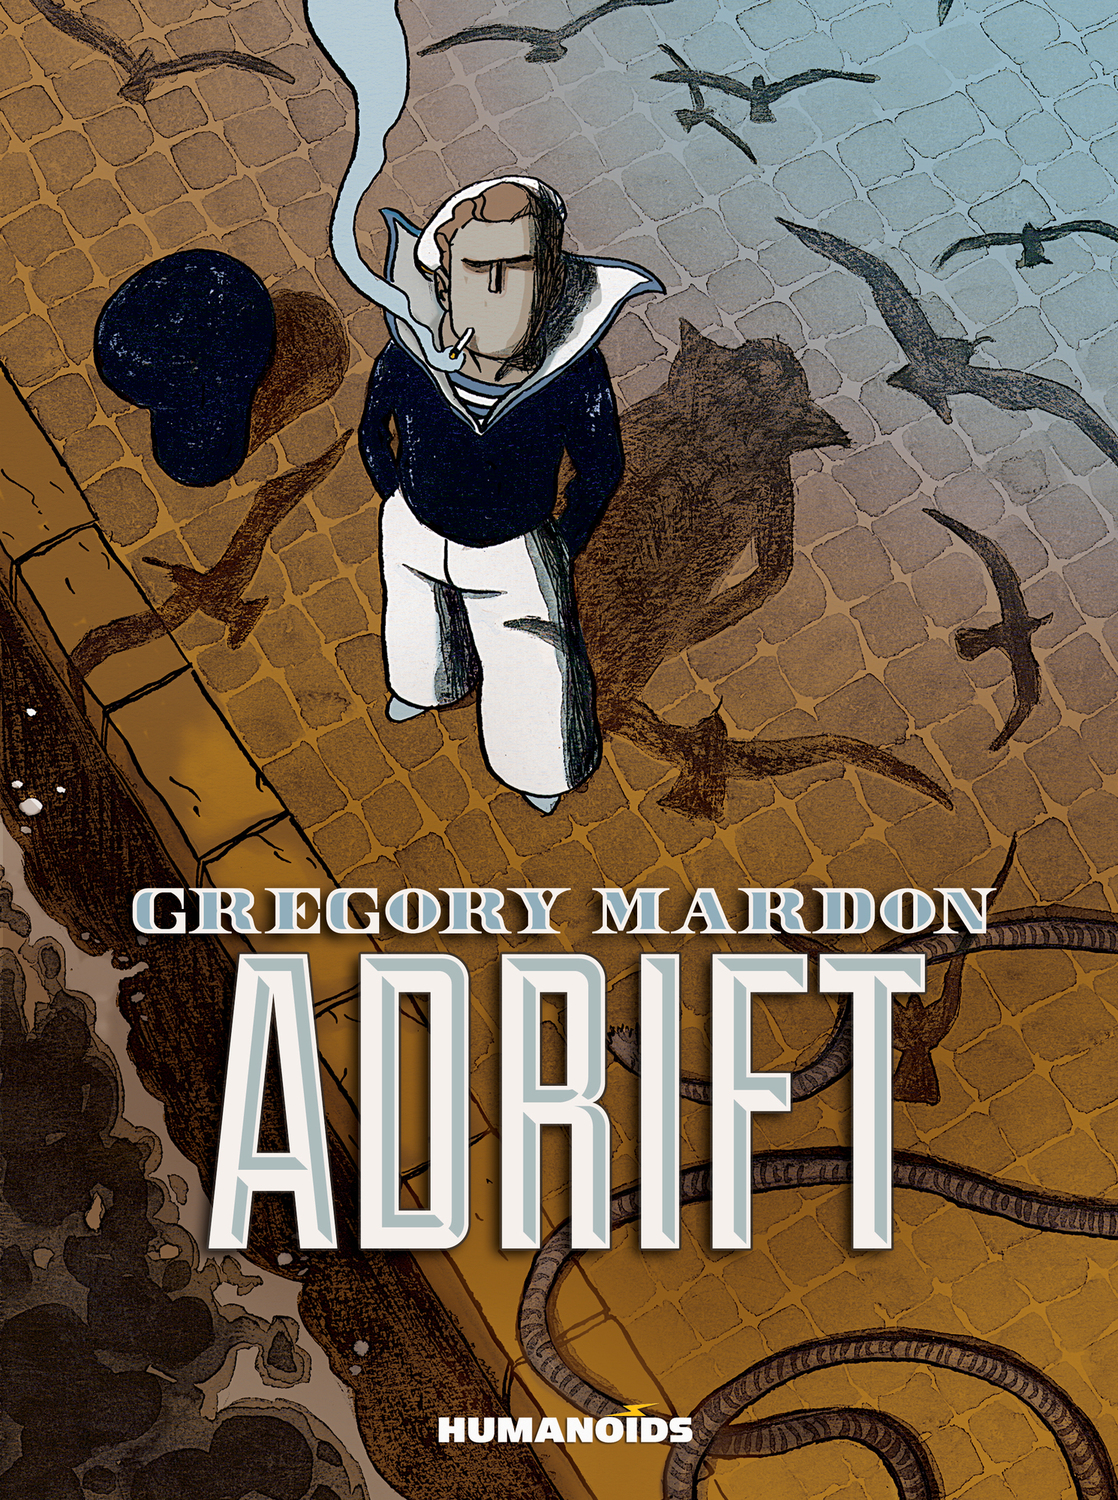 Adrift - Softcover Trade